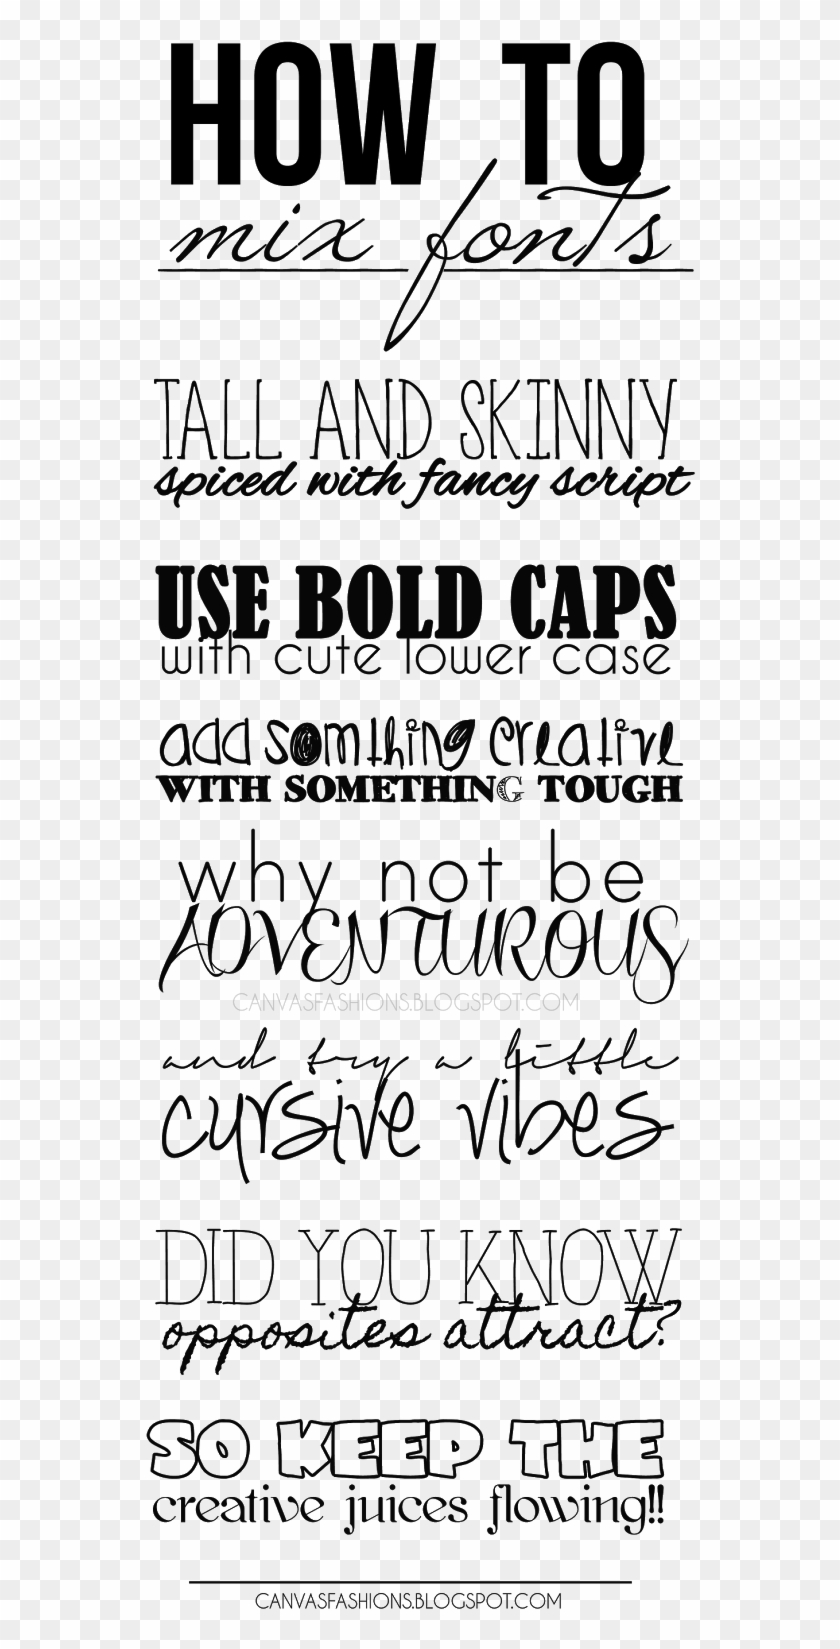 When It Comes To Fonts We Sometimes Don - Hand Lettering Mixing Fonts Clipart #4940589